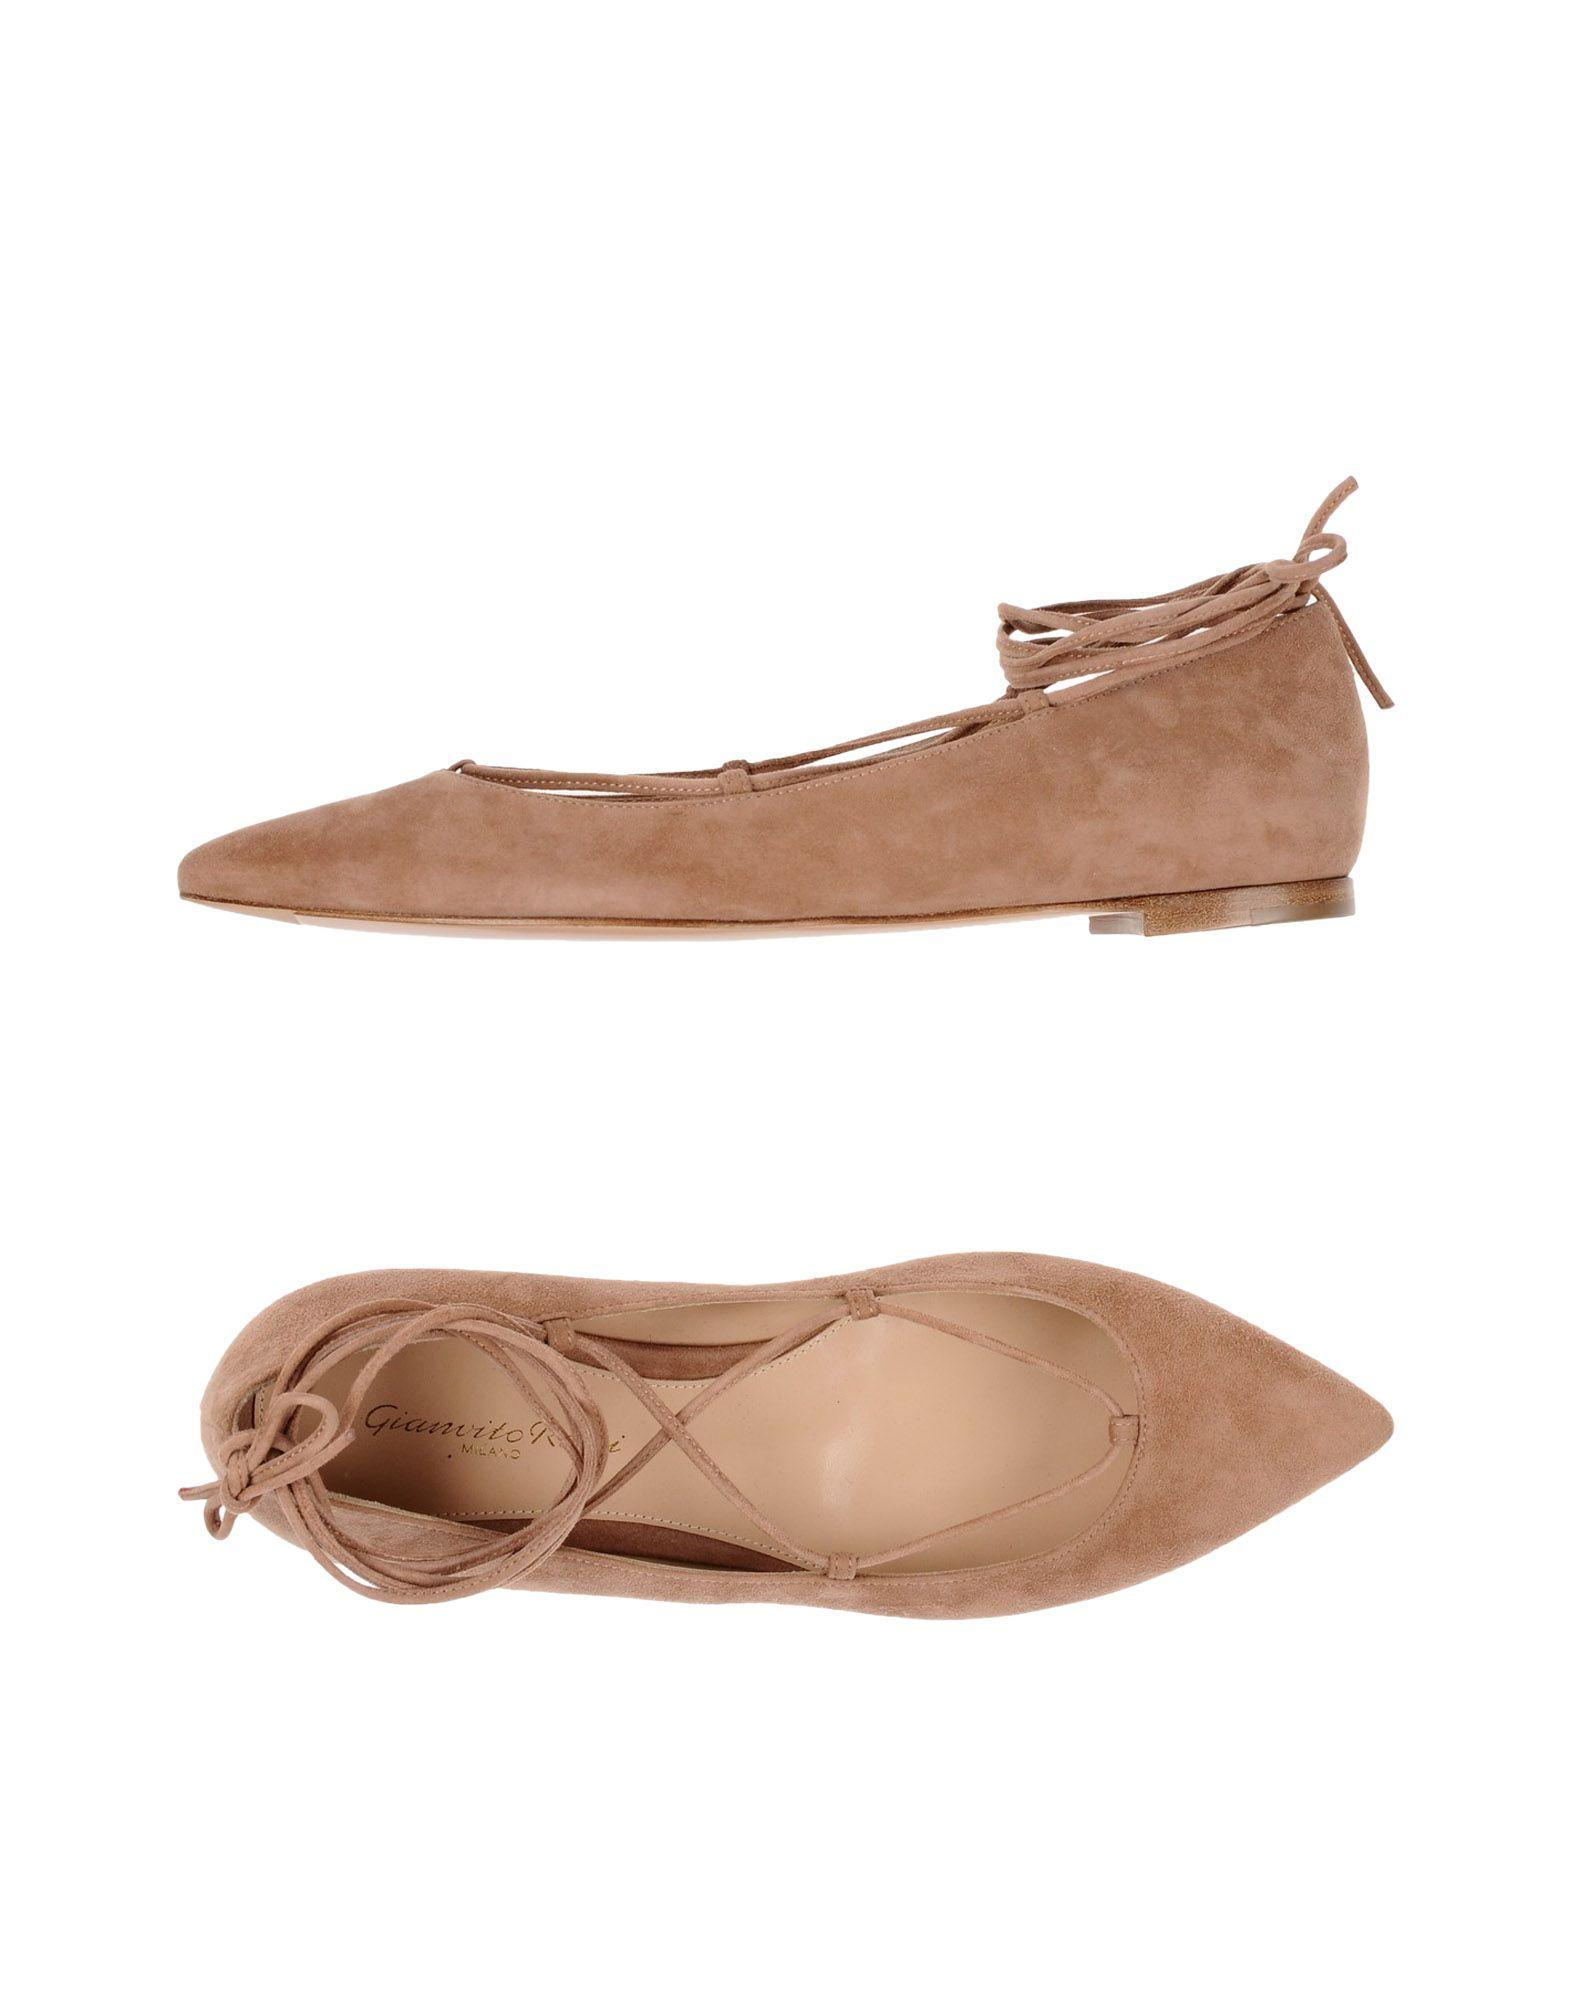 Gianvito Rossi Ballet Flats In Pale Pink